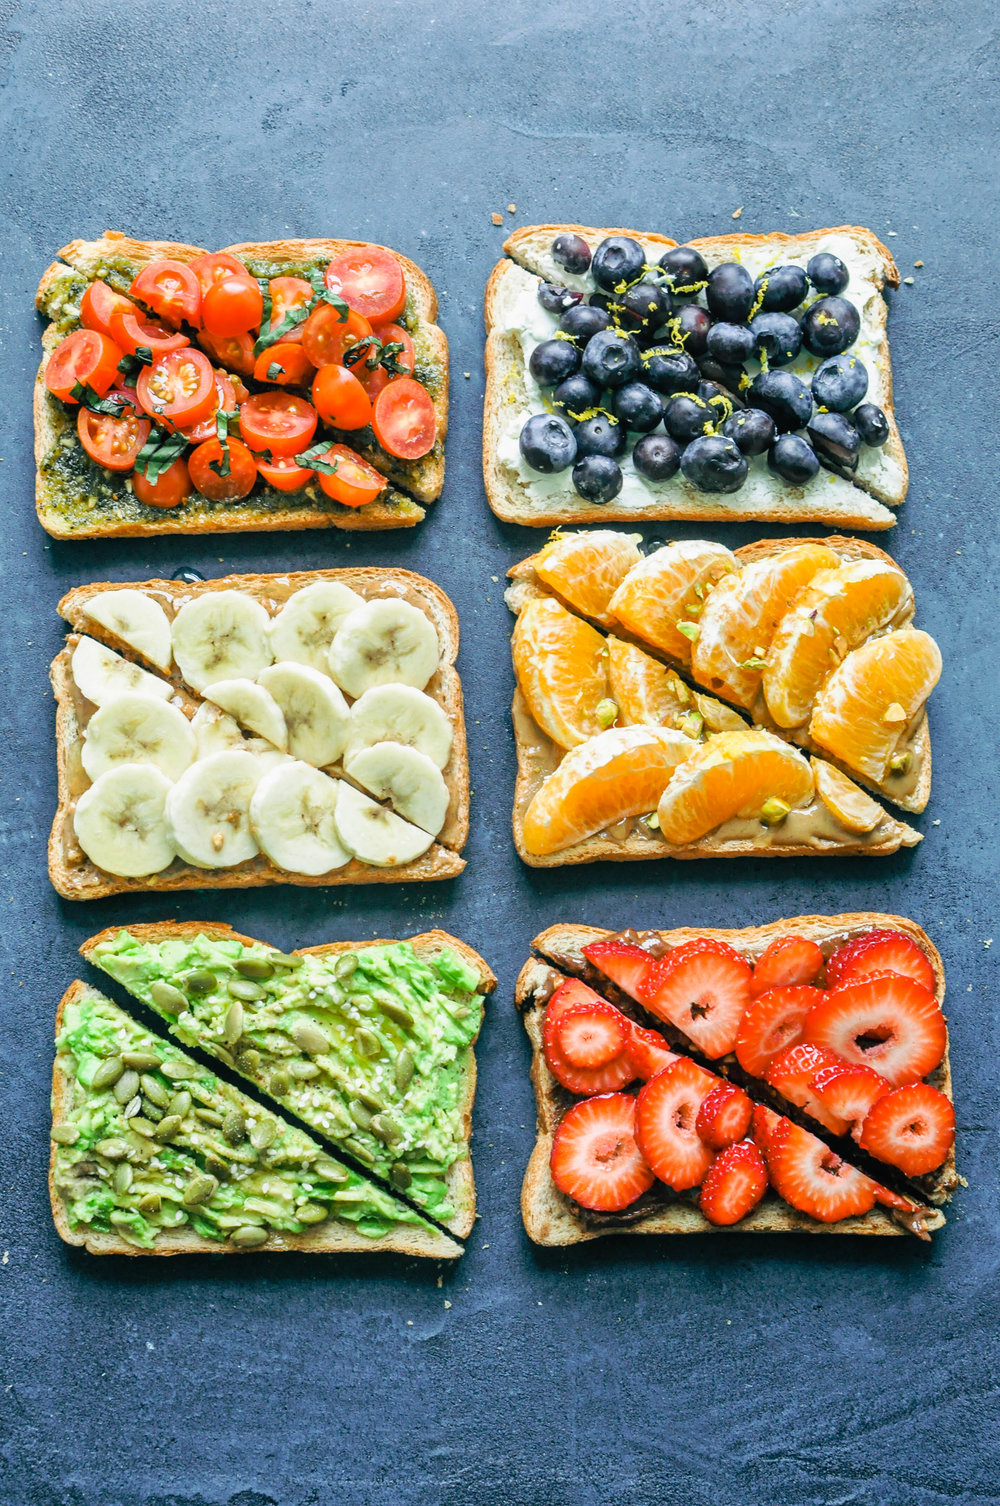 6 Kinds of Toast from This Healthy Table